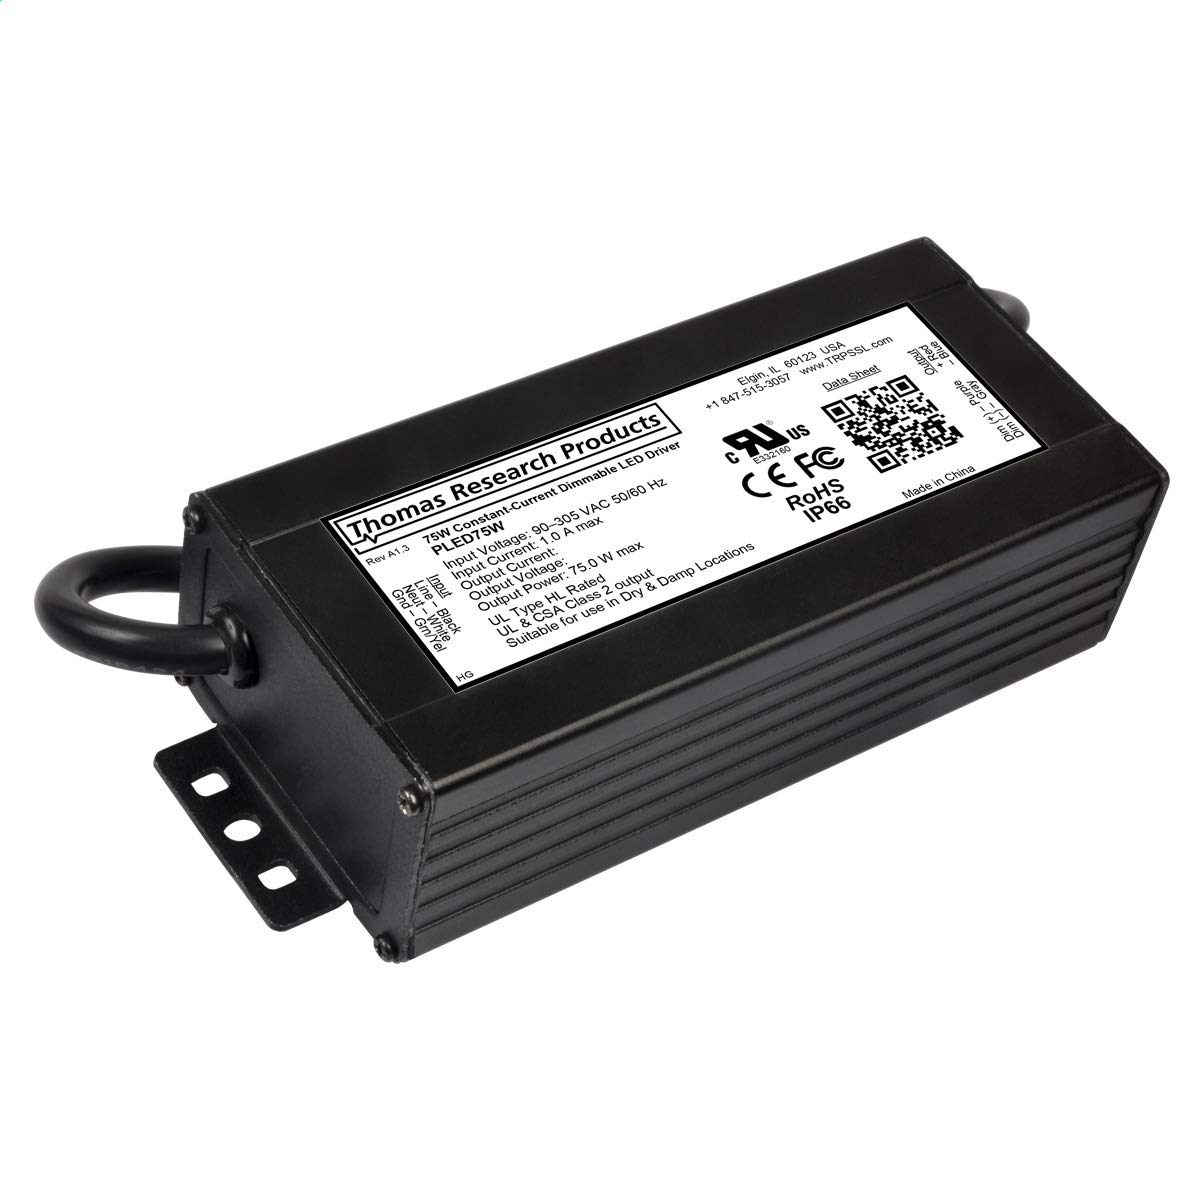 Hubbell PLED75W-042-C1790-D Constant Current Driver, dimmable Thomas Research Products